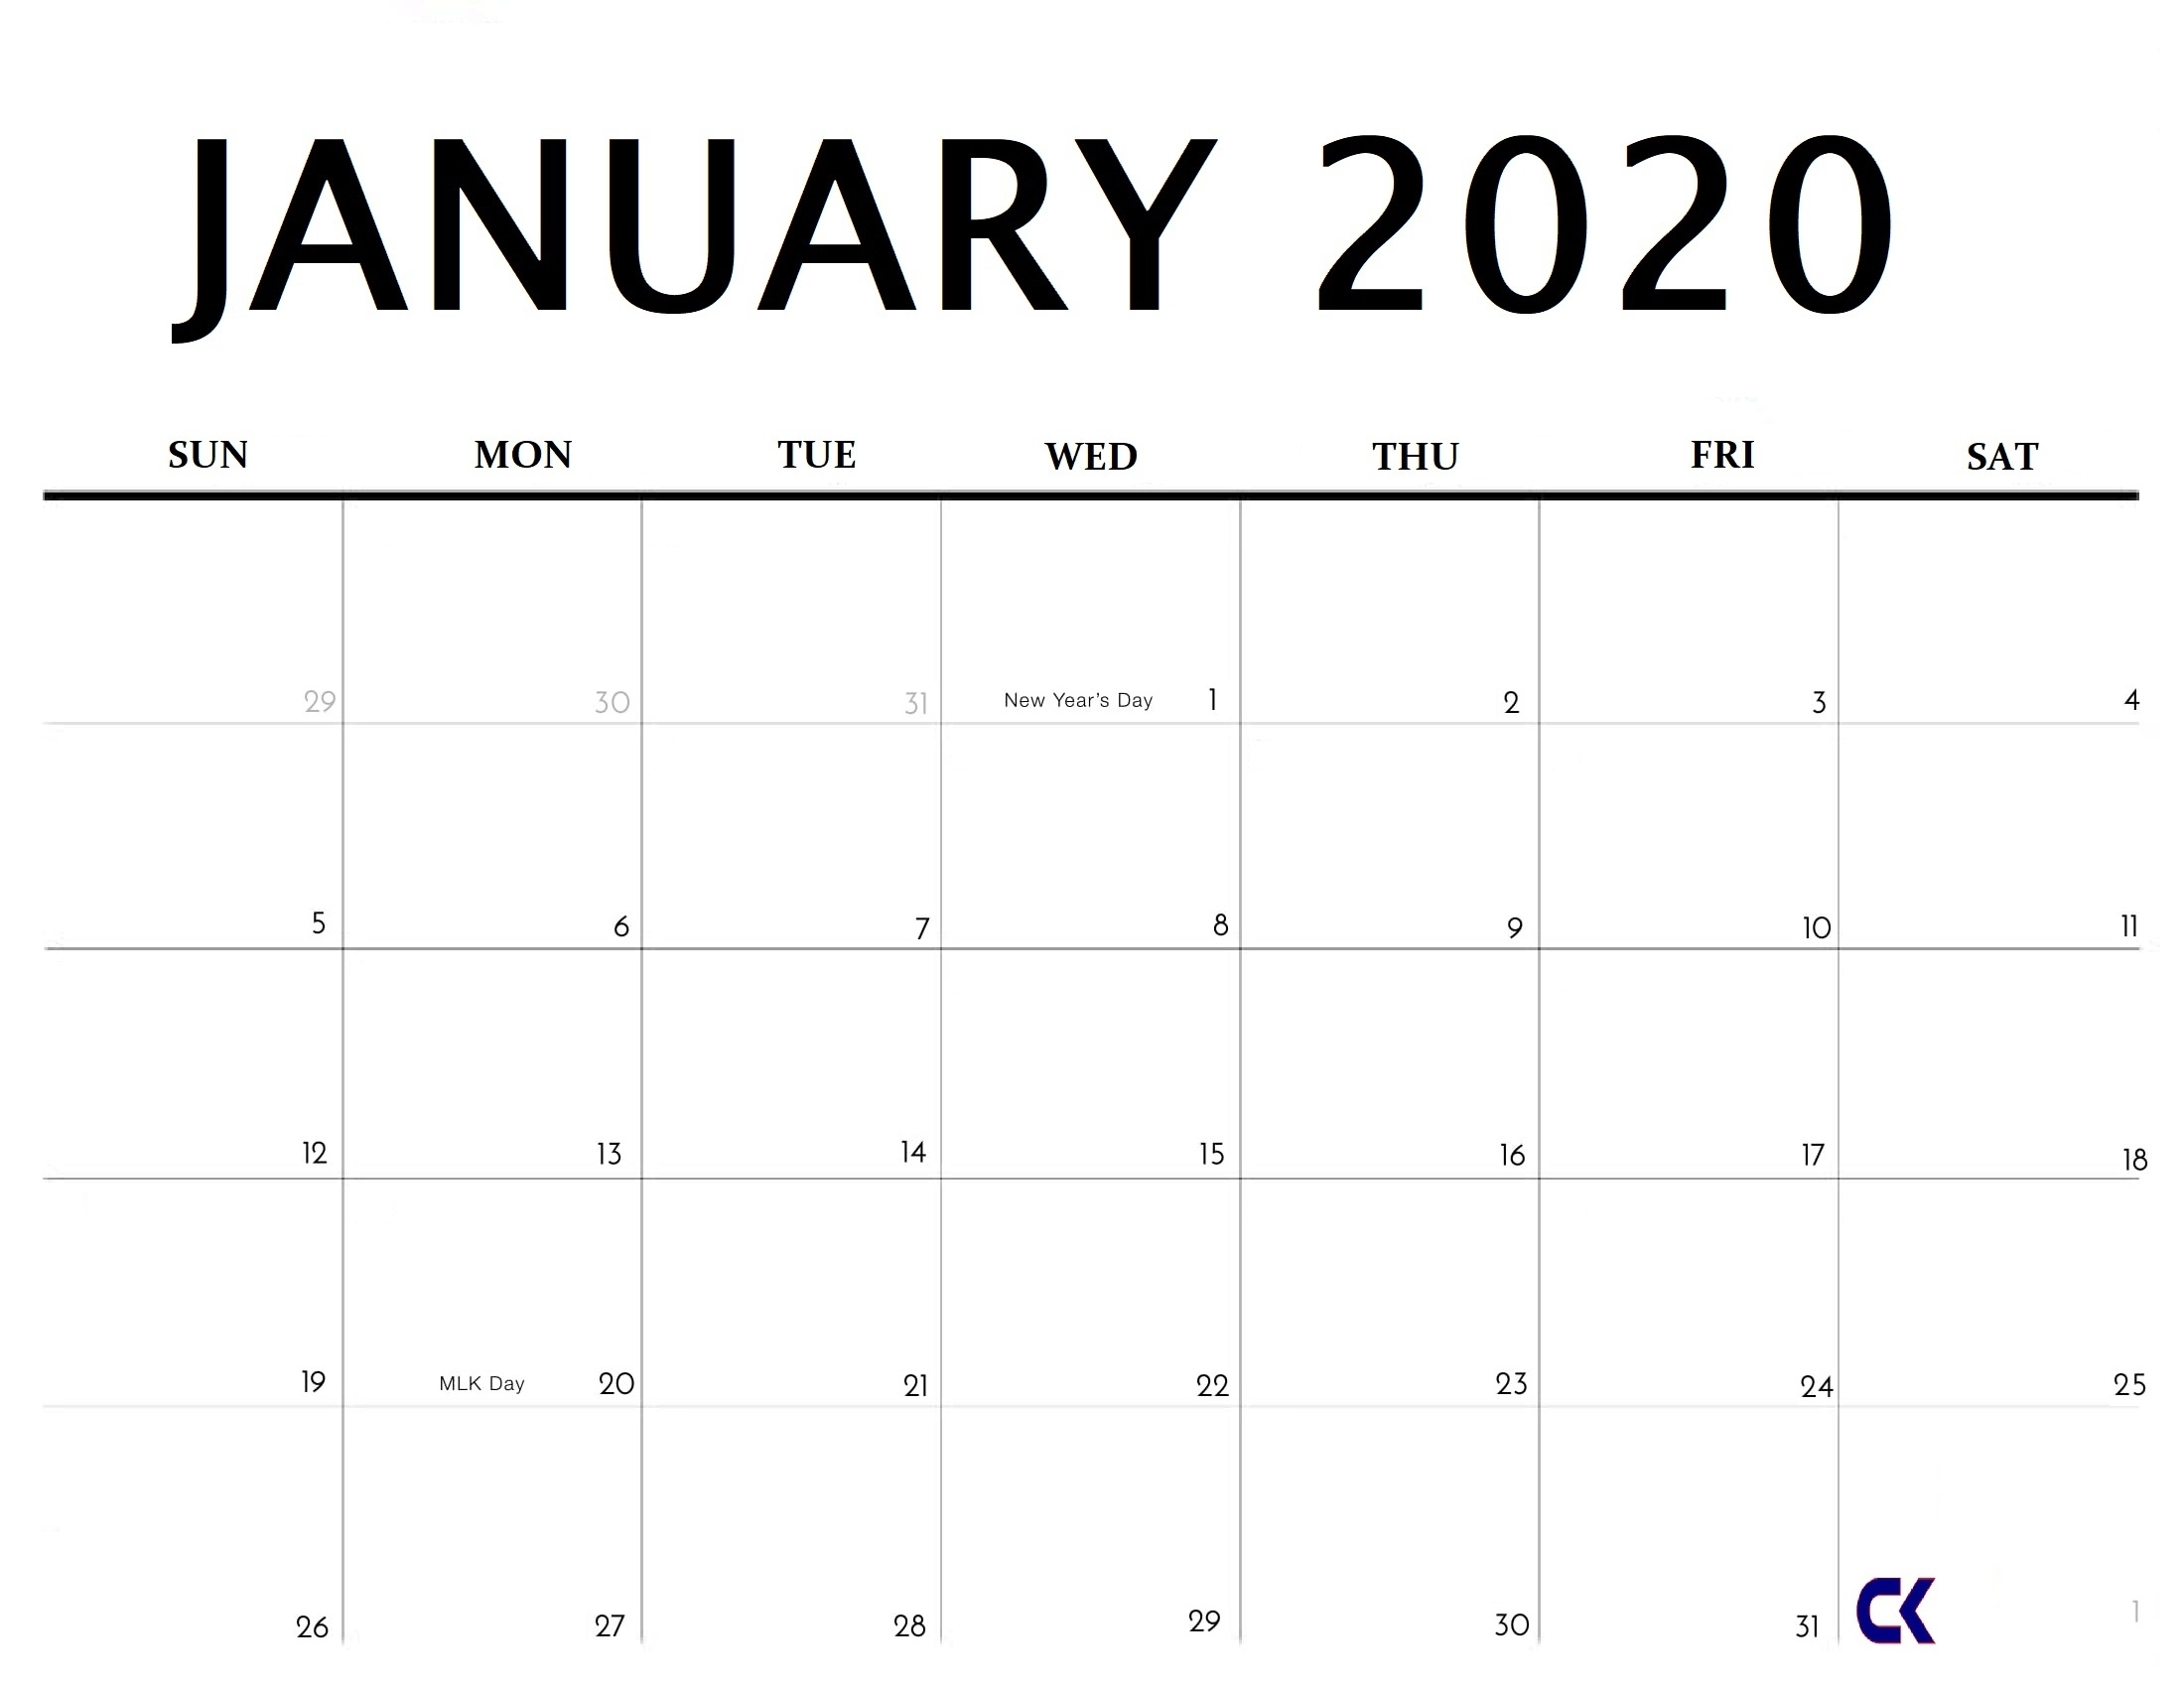 Printable January 2020 Calendar - regarding Calendars To Print Free With Space To Write